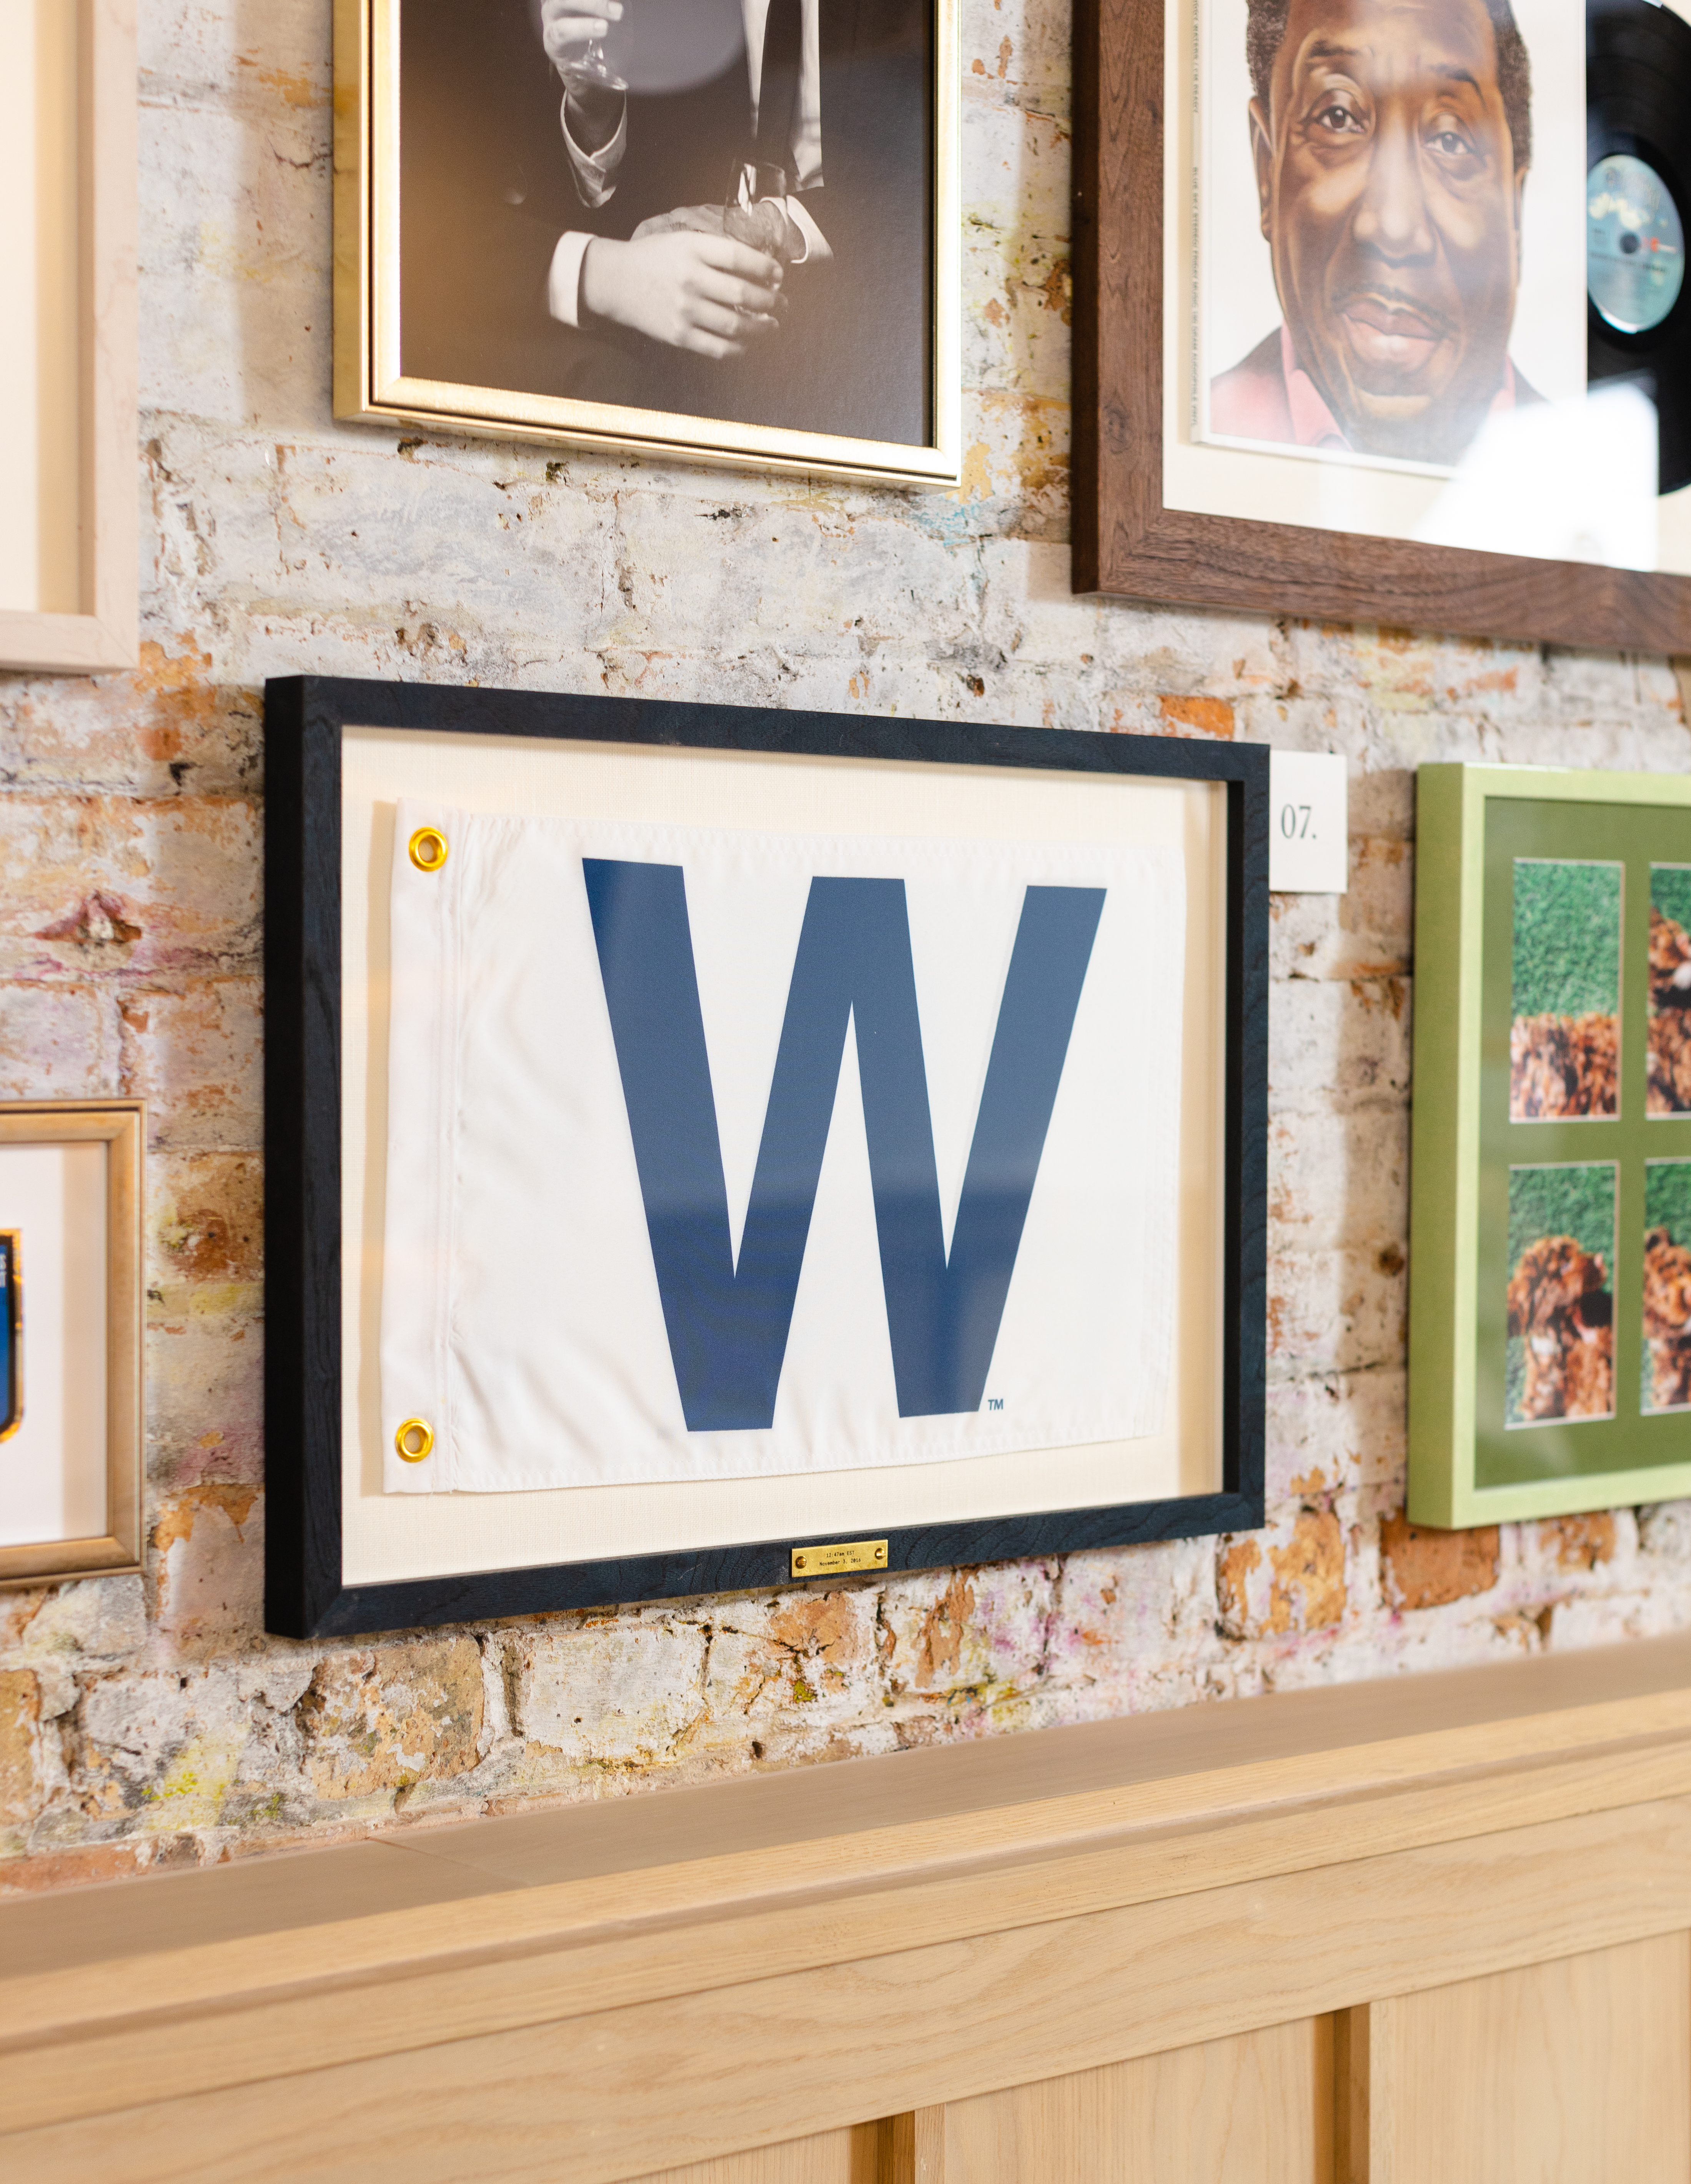 cubs win flag in frame